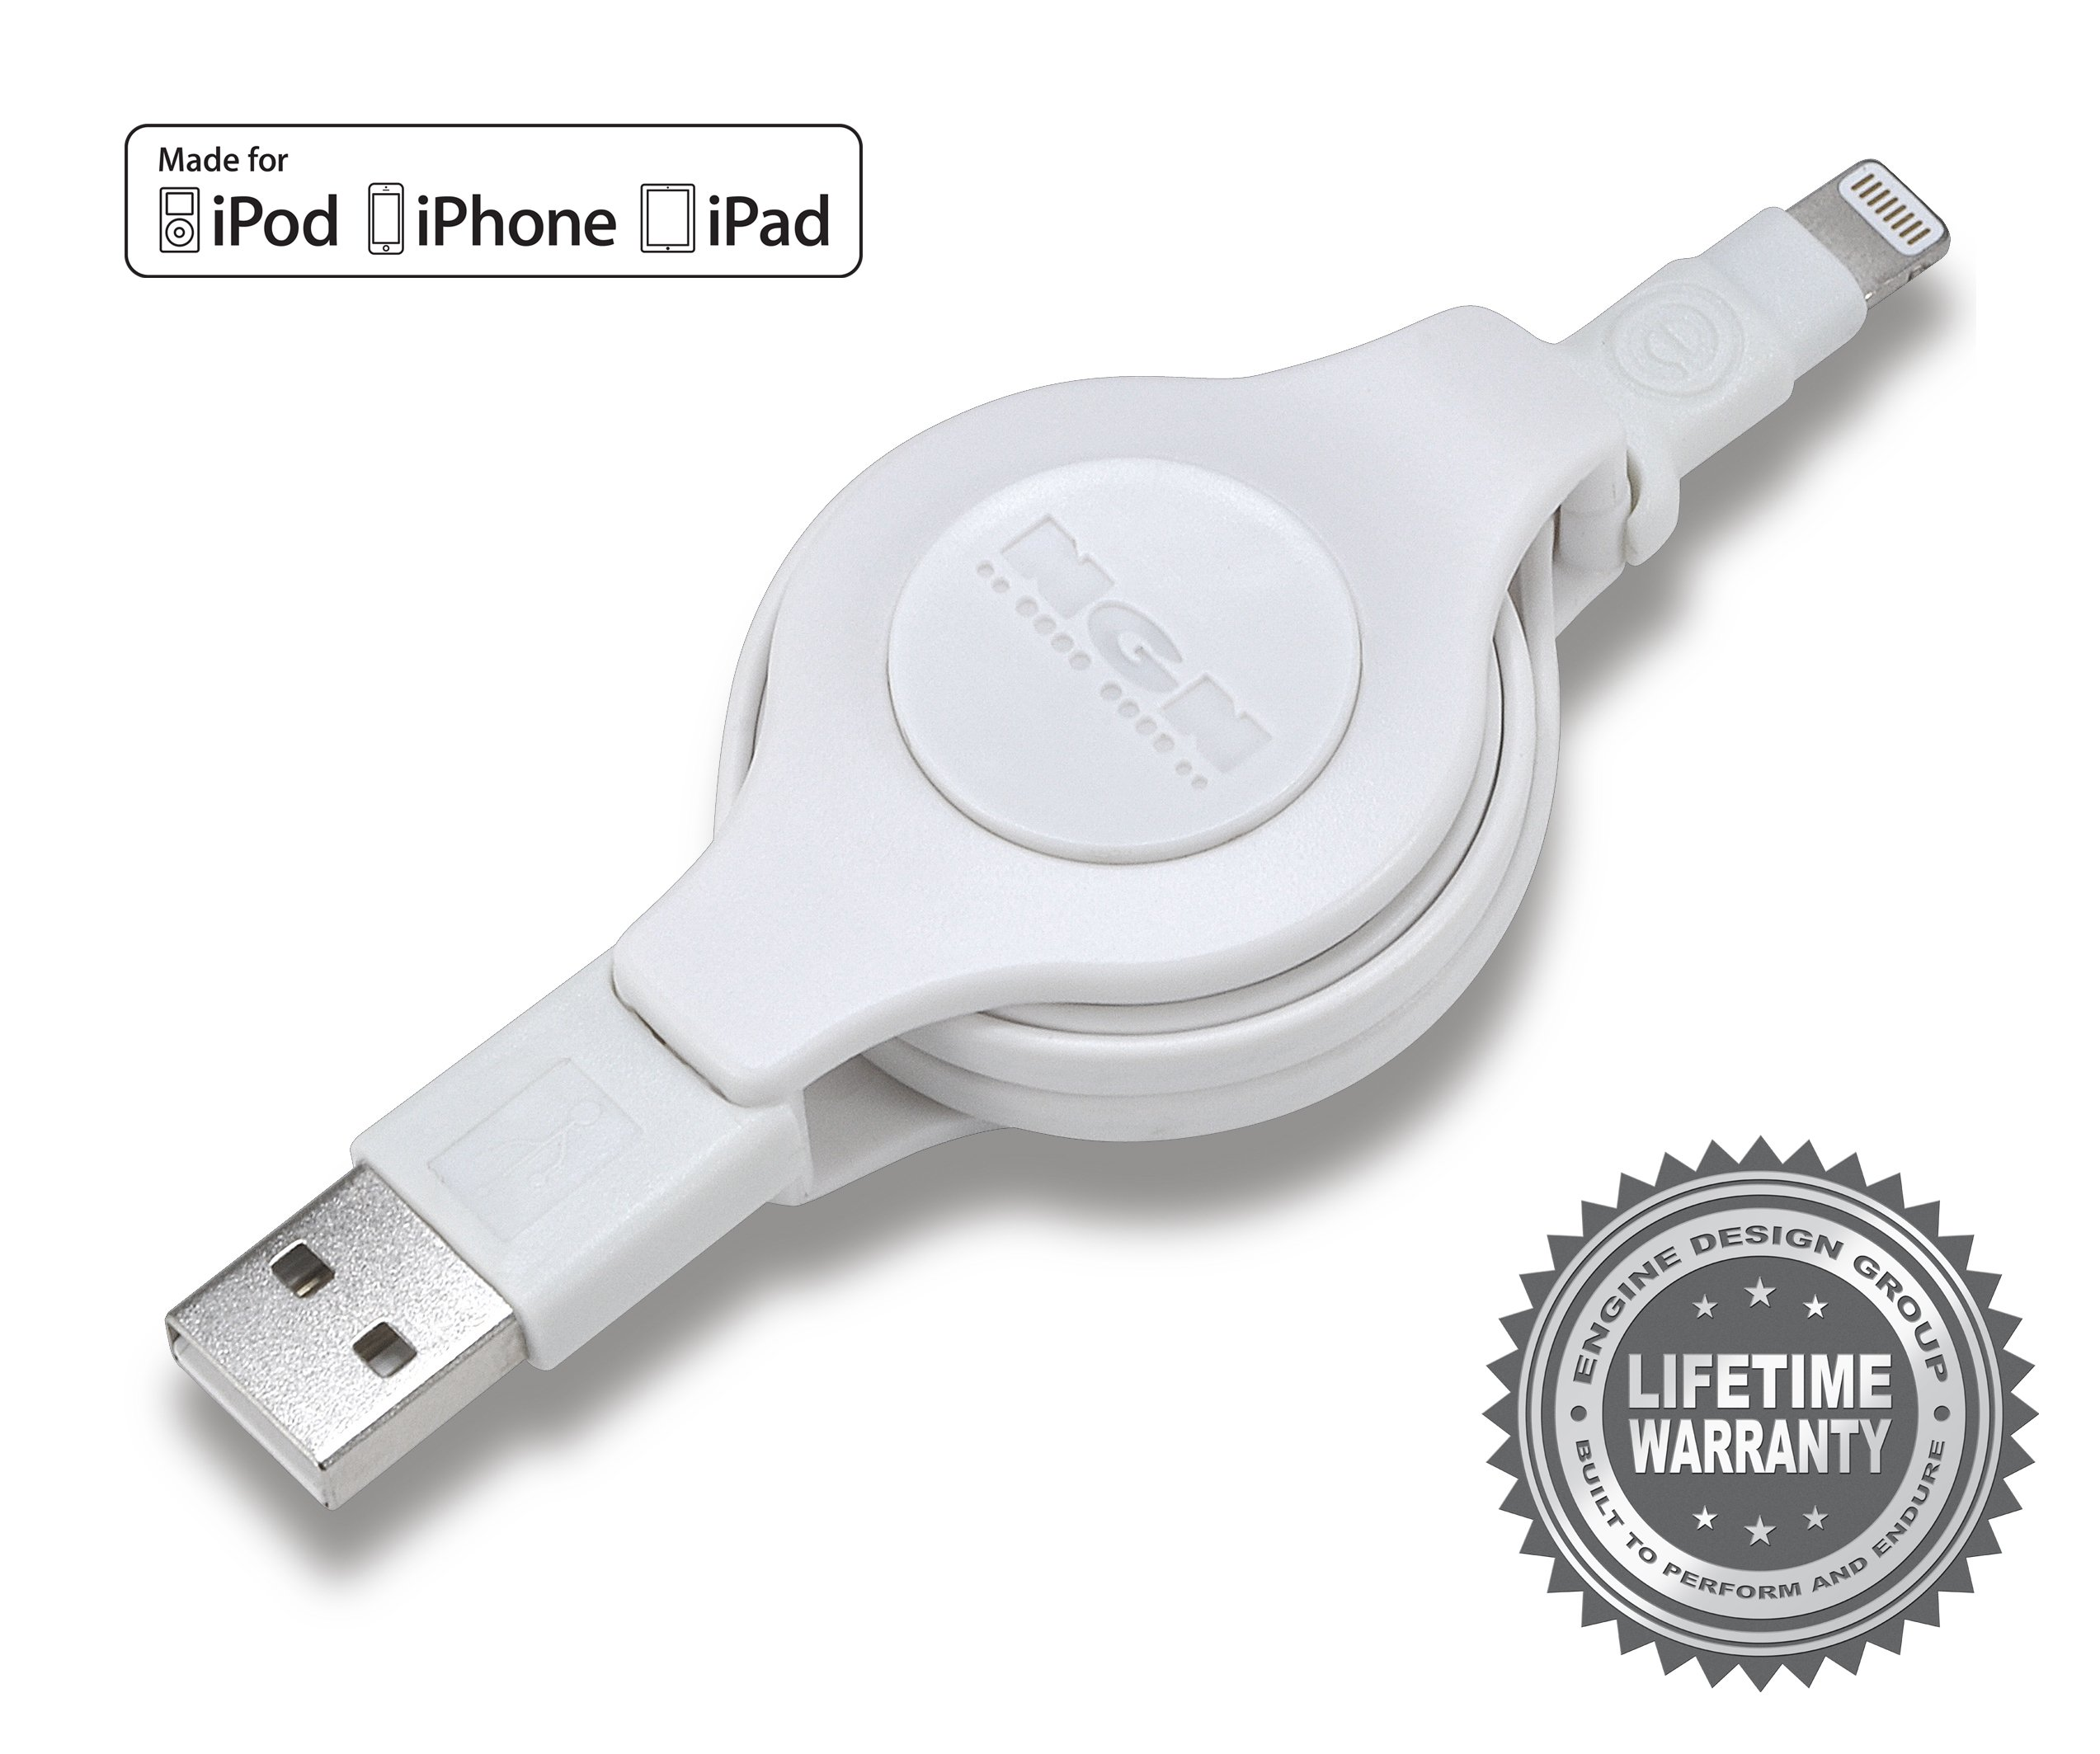 Apple MFI Certified Retractable Lightning Cable | Charge and Sync Lightning to USB - 3.5 Feet (White) 3-Pack by Engine Design Group NGN (Image #4)